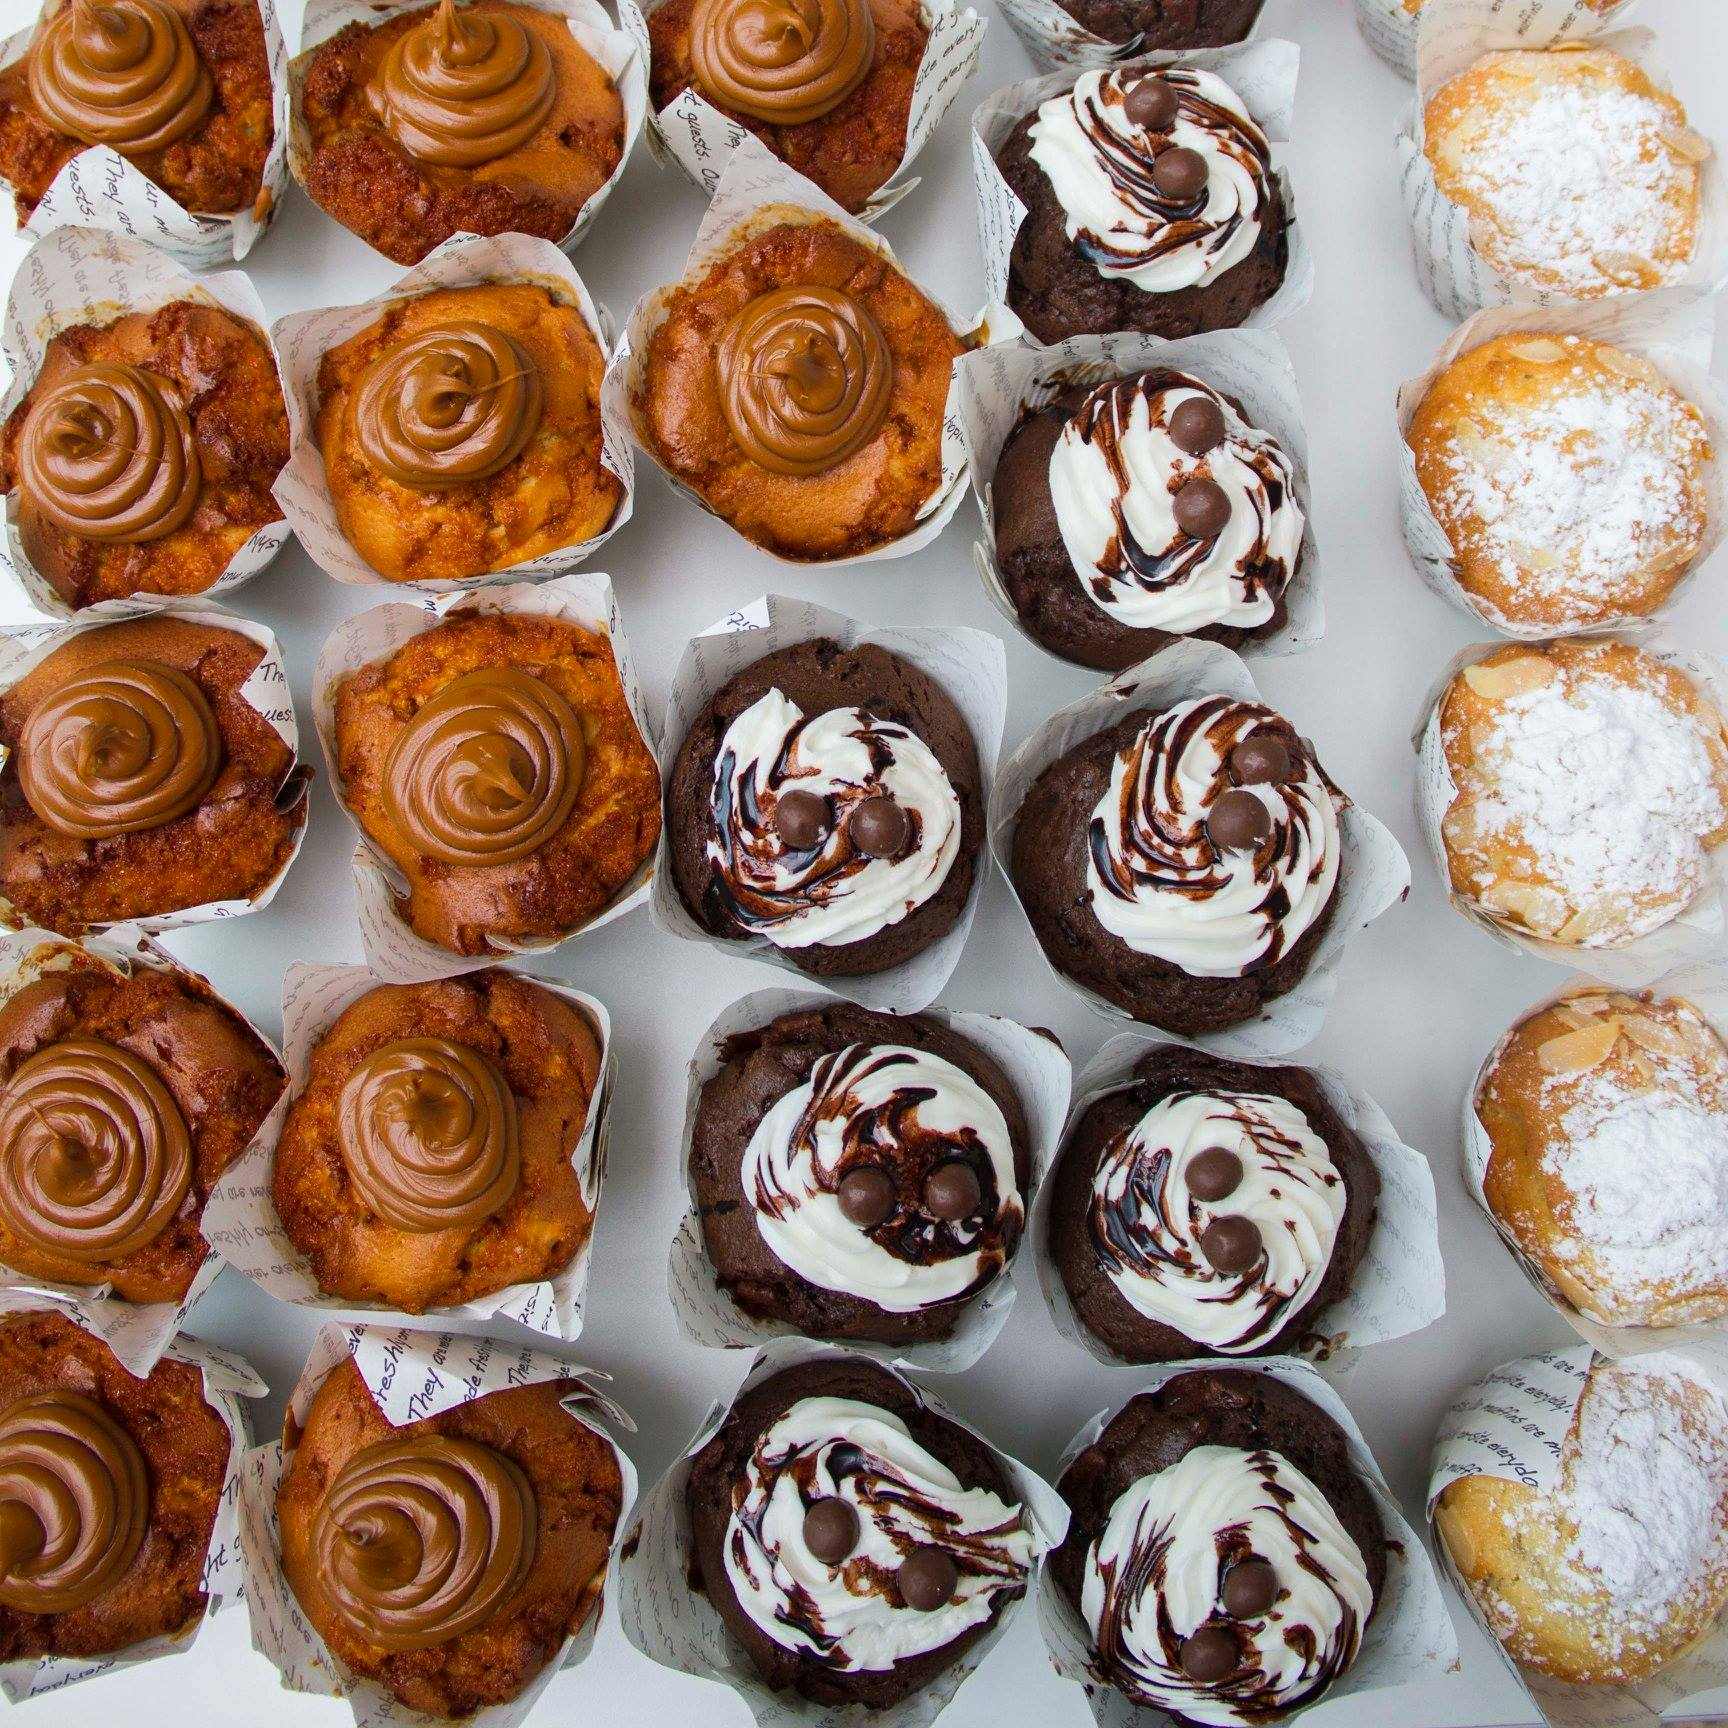 BB's caramel chocolate and lemon muffins lined up